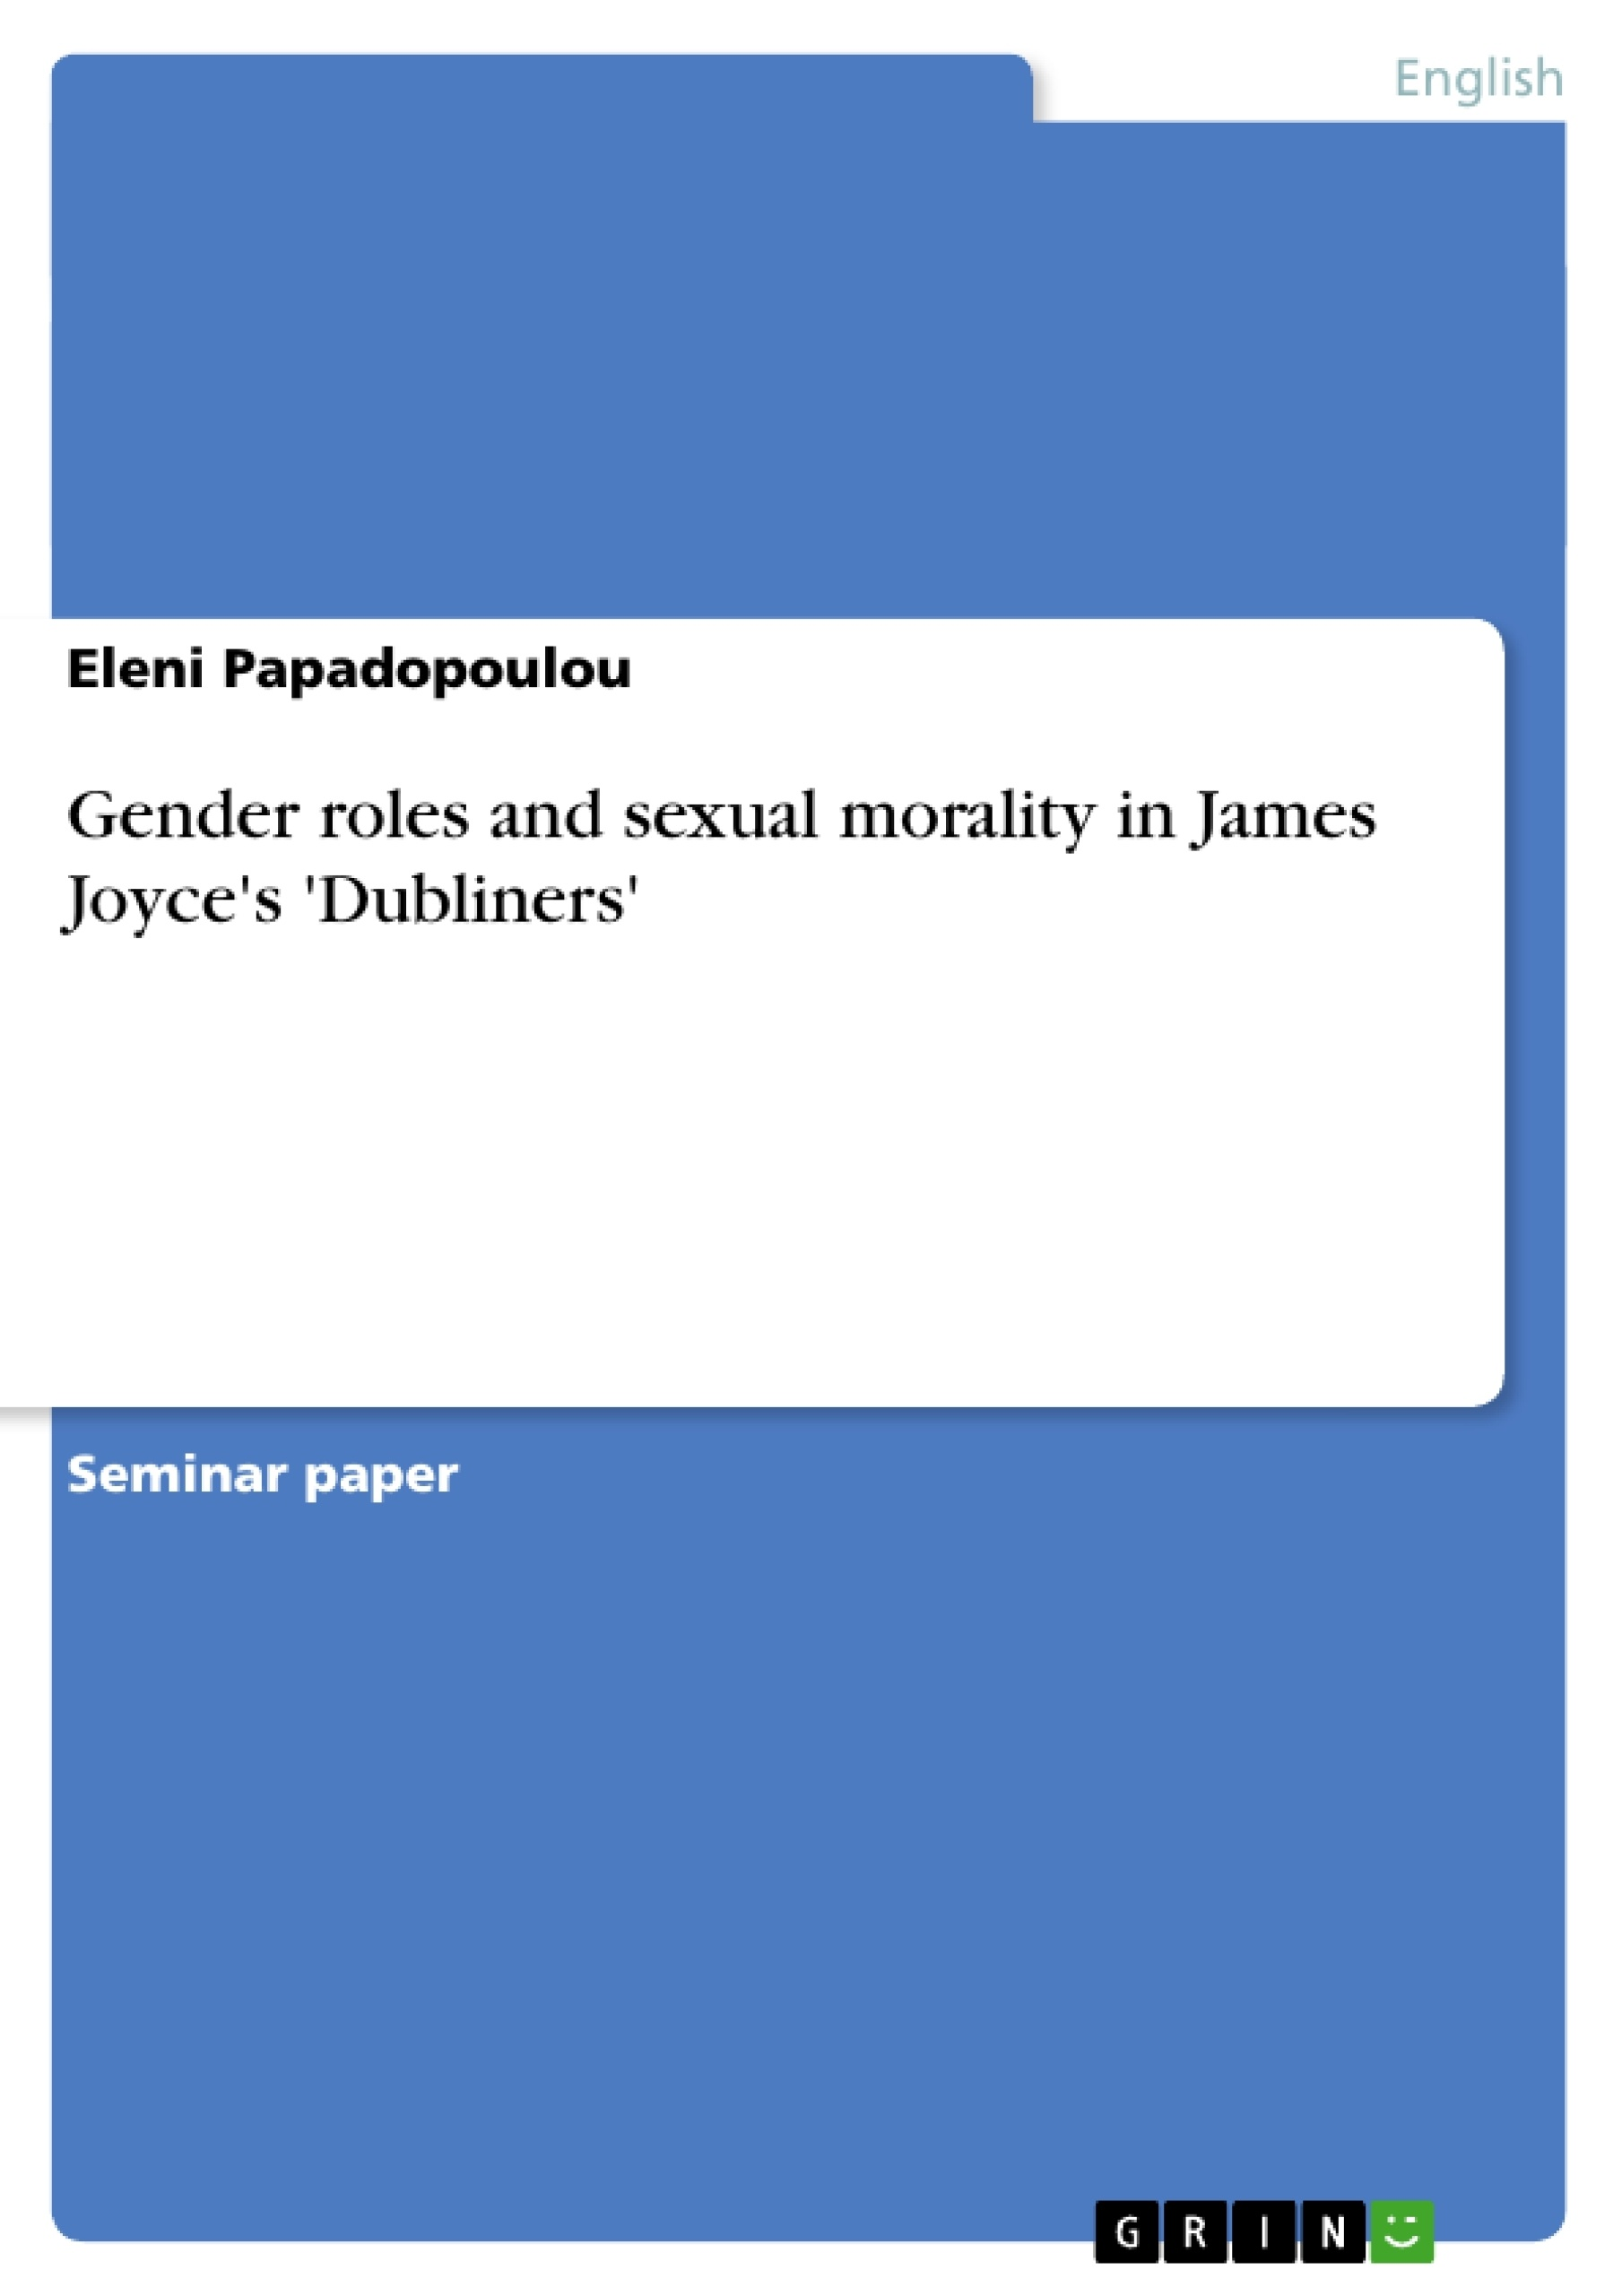 Title: Gender roles and sexual morality in James Joyce's 'Dubliners'